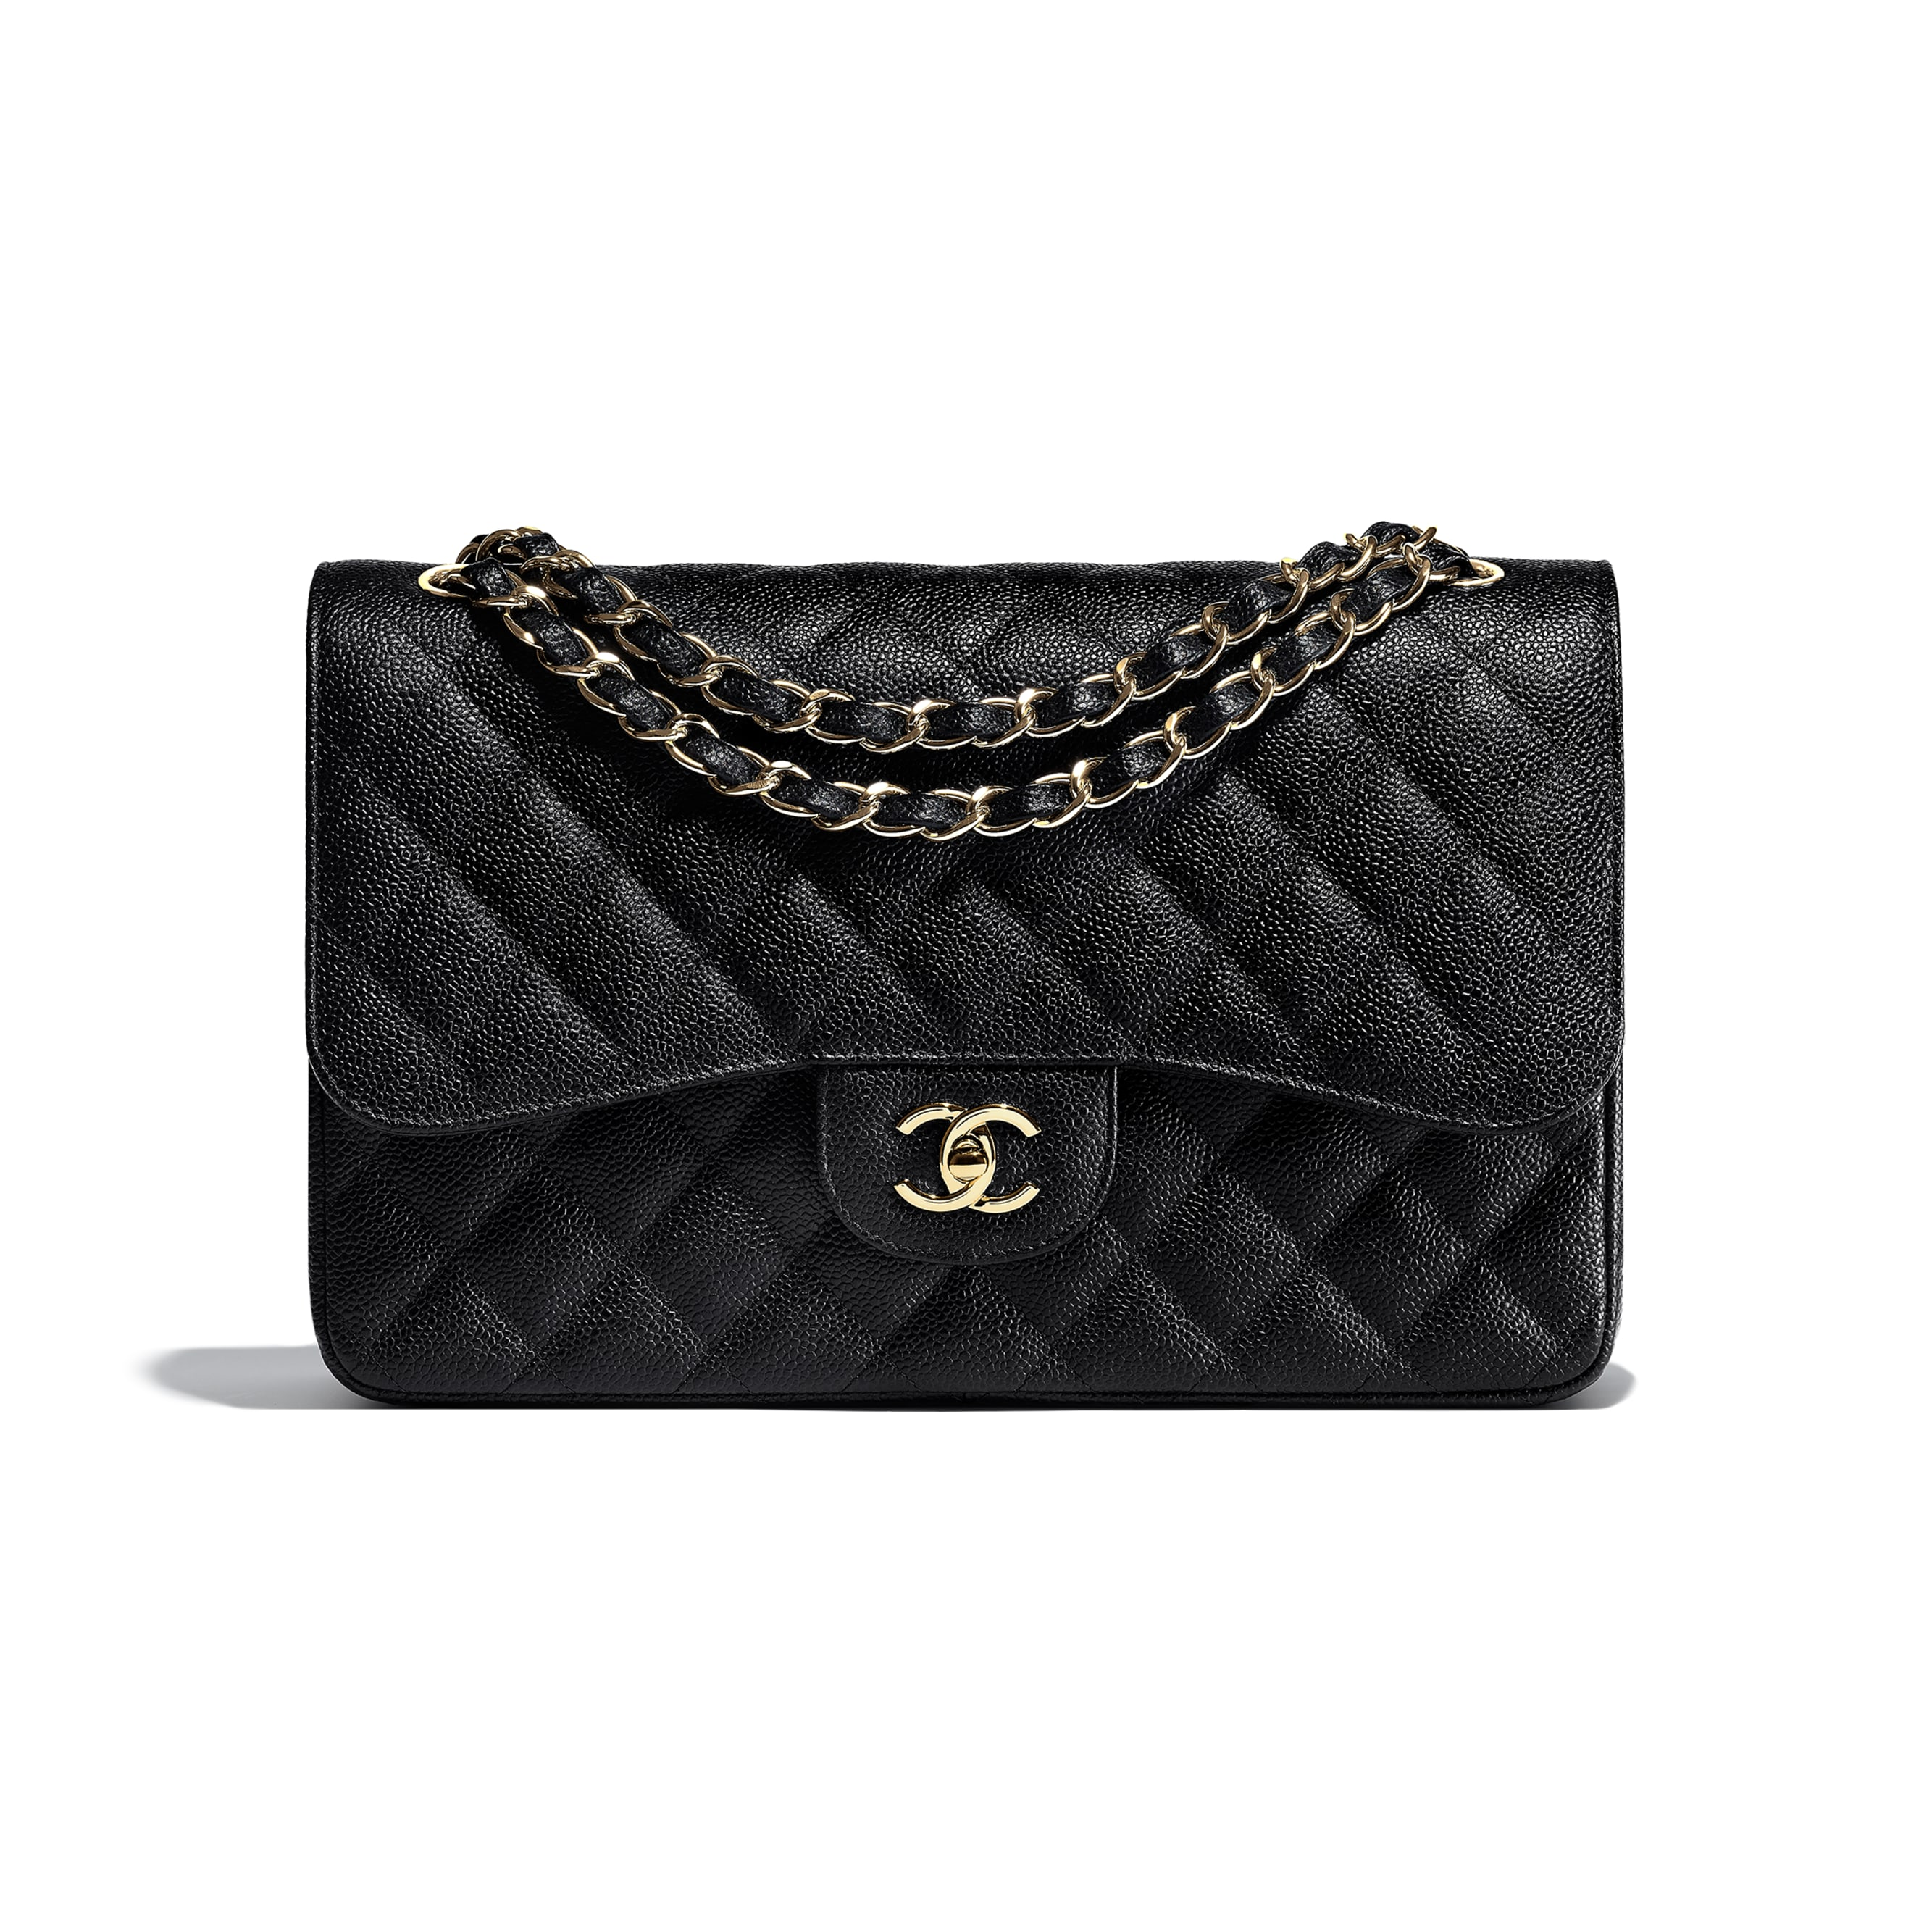 Large Classic Handbag - Black - Grained Calfskin & Gold-Tone Metal - Default view - see standard sized version